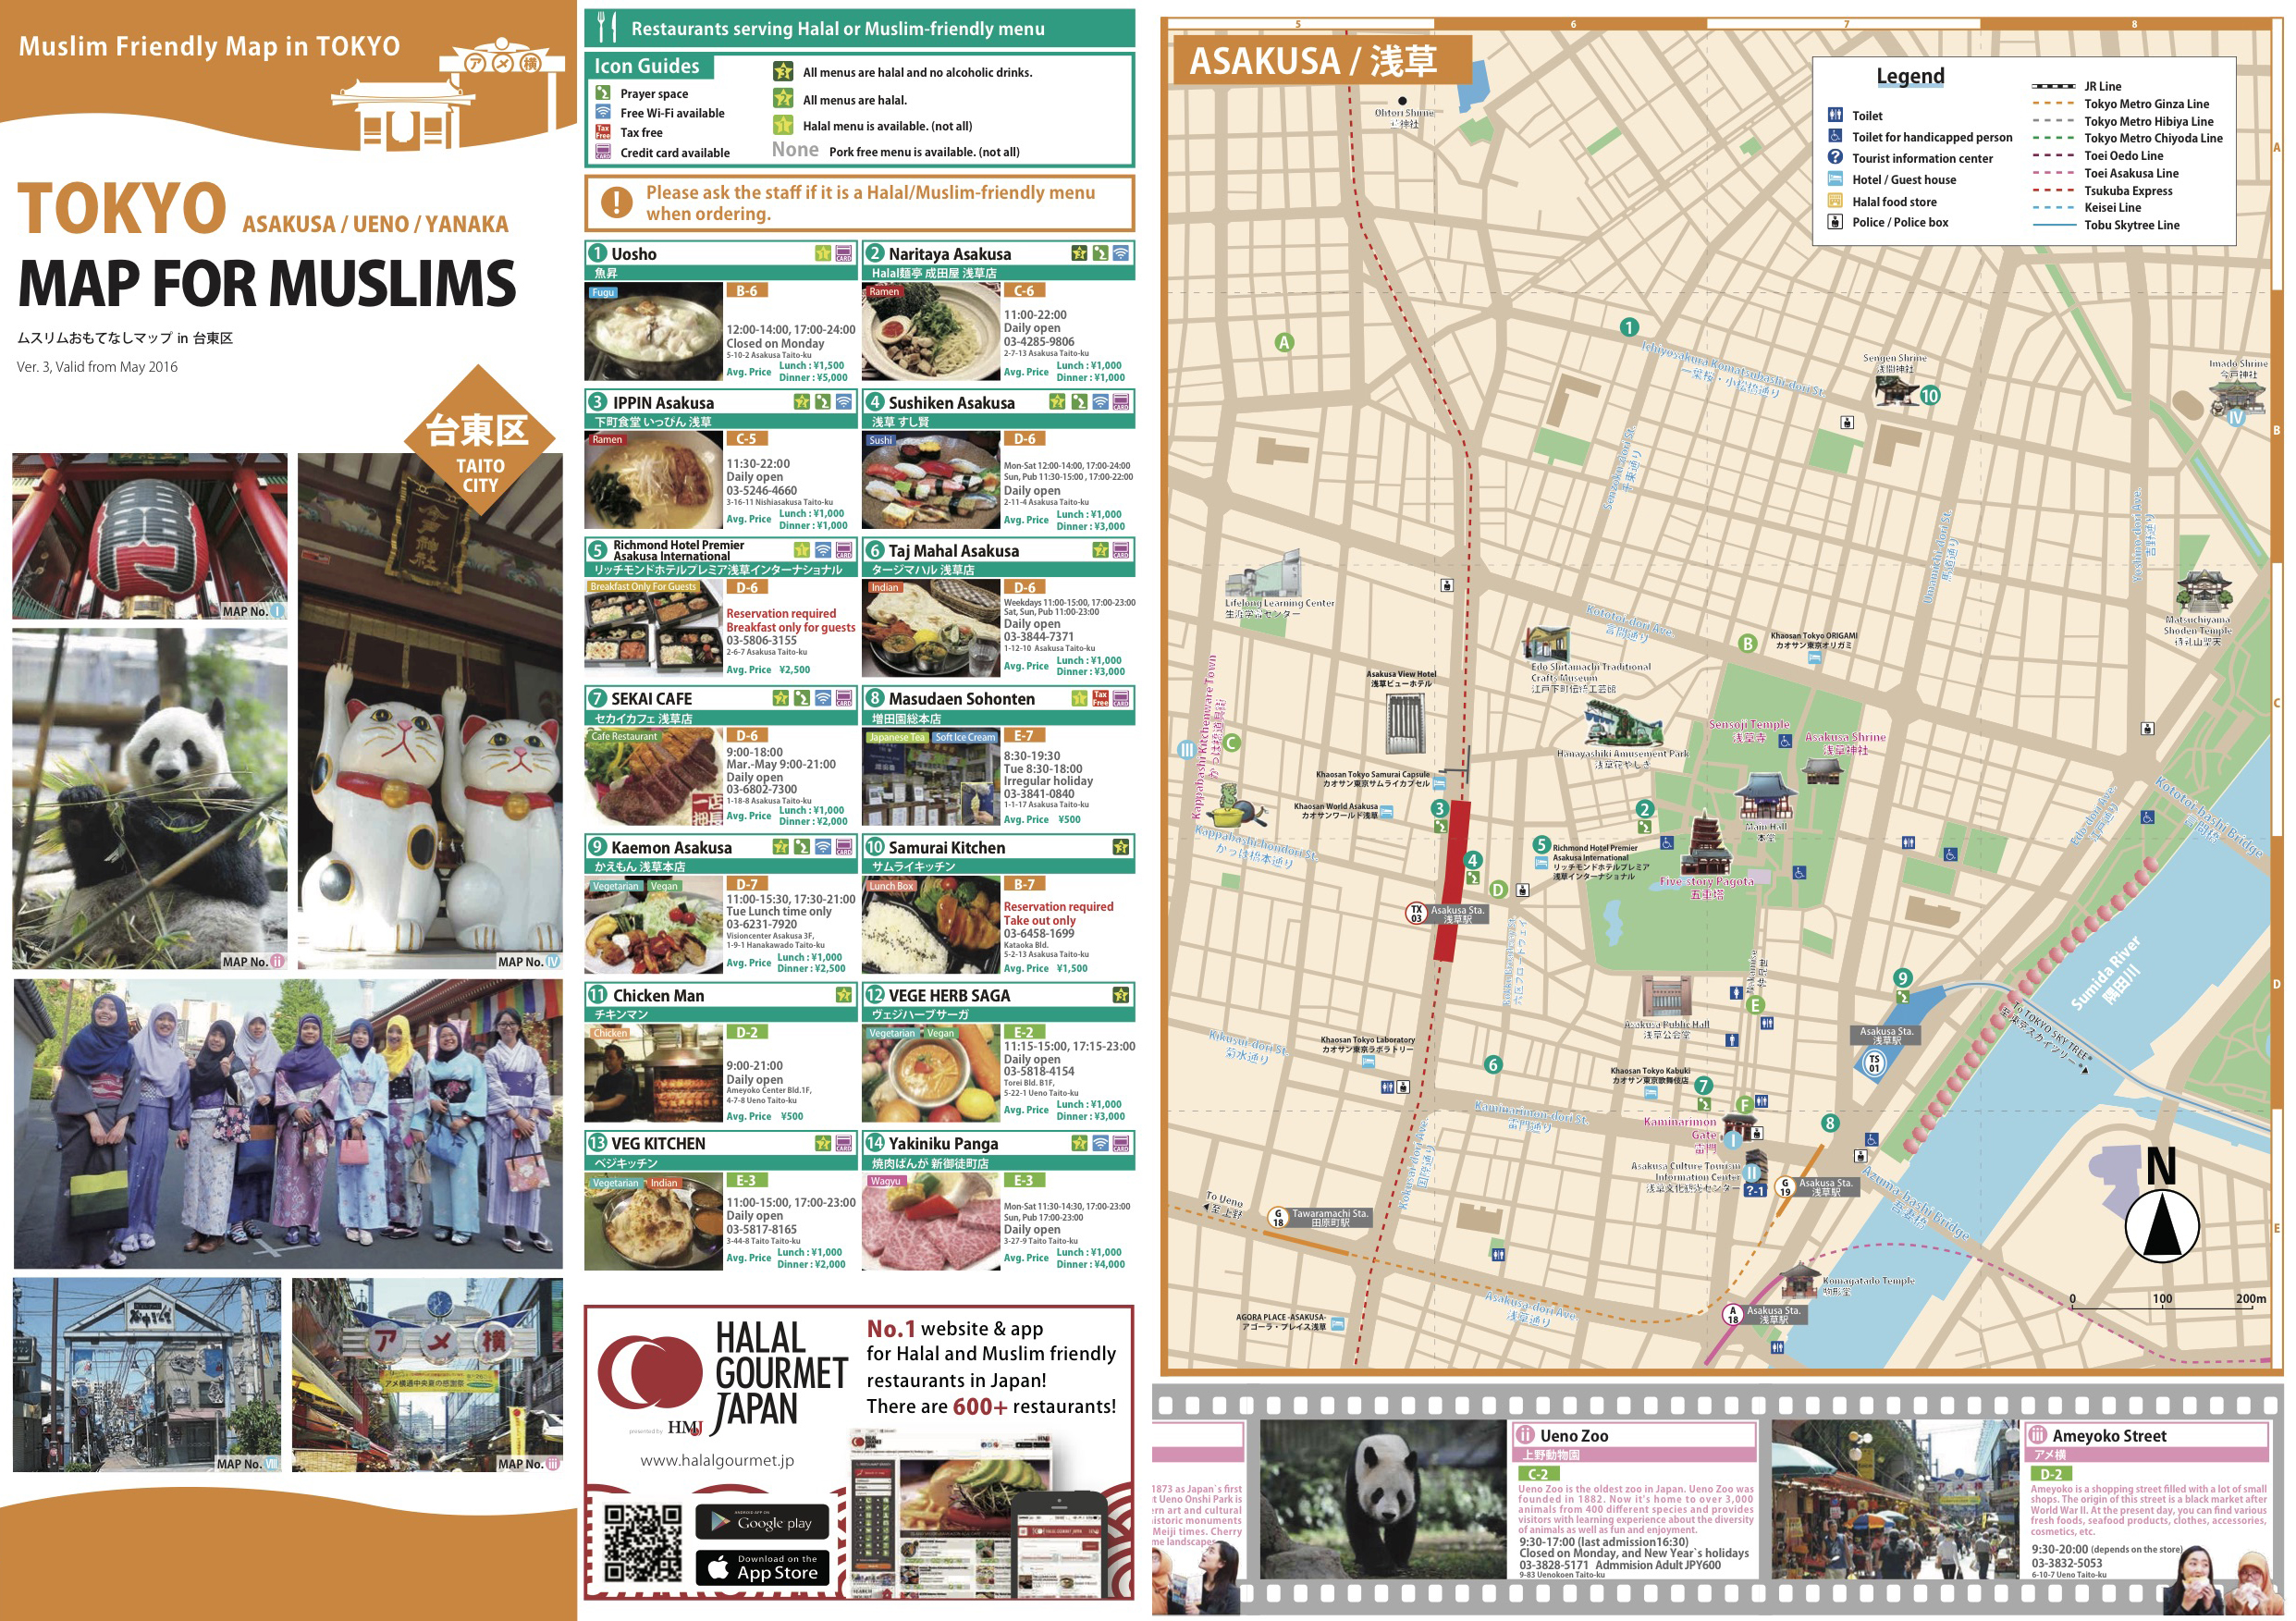 TOKYO MAP FOR MUSLIMS Is Now Available Many Places To Visit In - Tokyo map for tourists